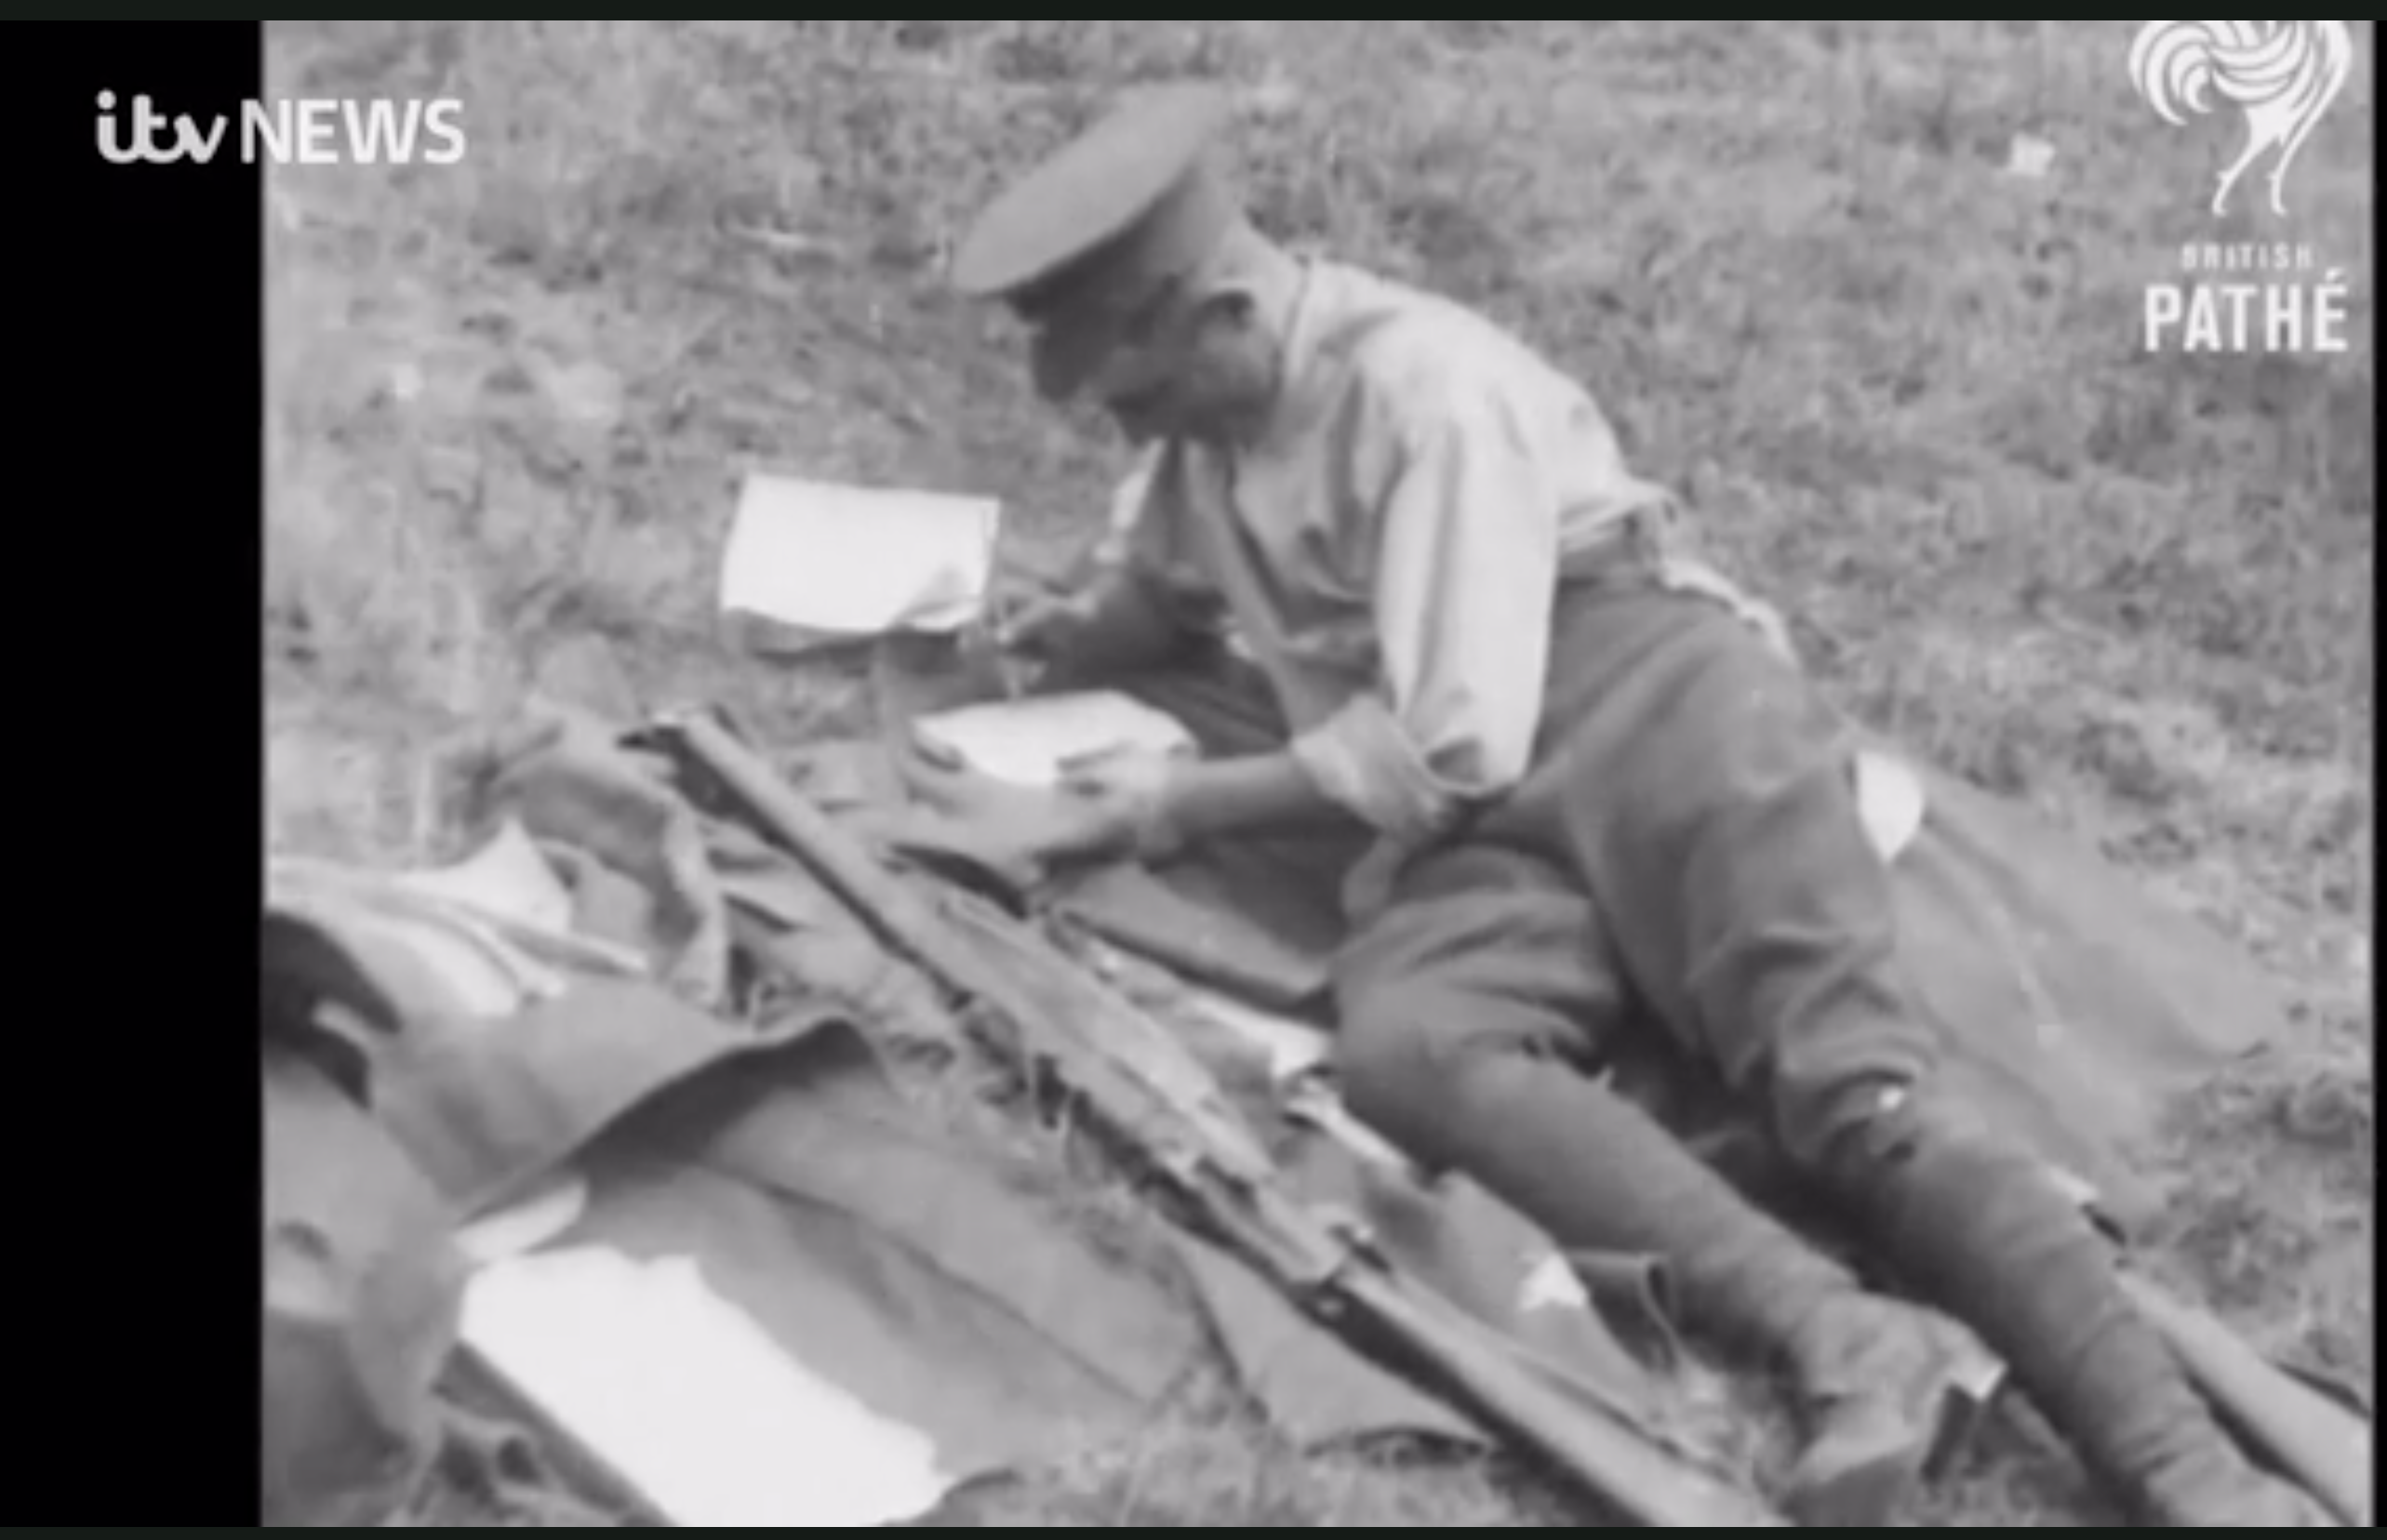 Above: The ITV news coverage included footage from Pathe News explaining how important receiving cards and letters were during the two World Wars.